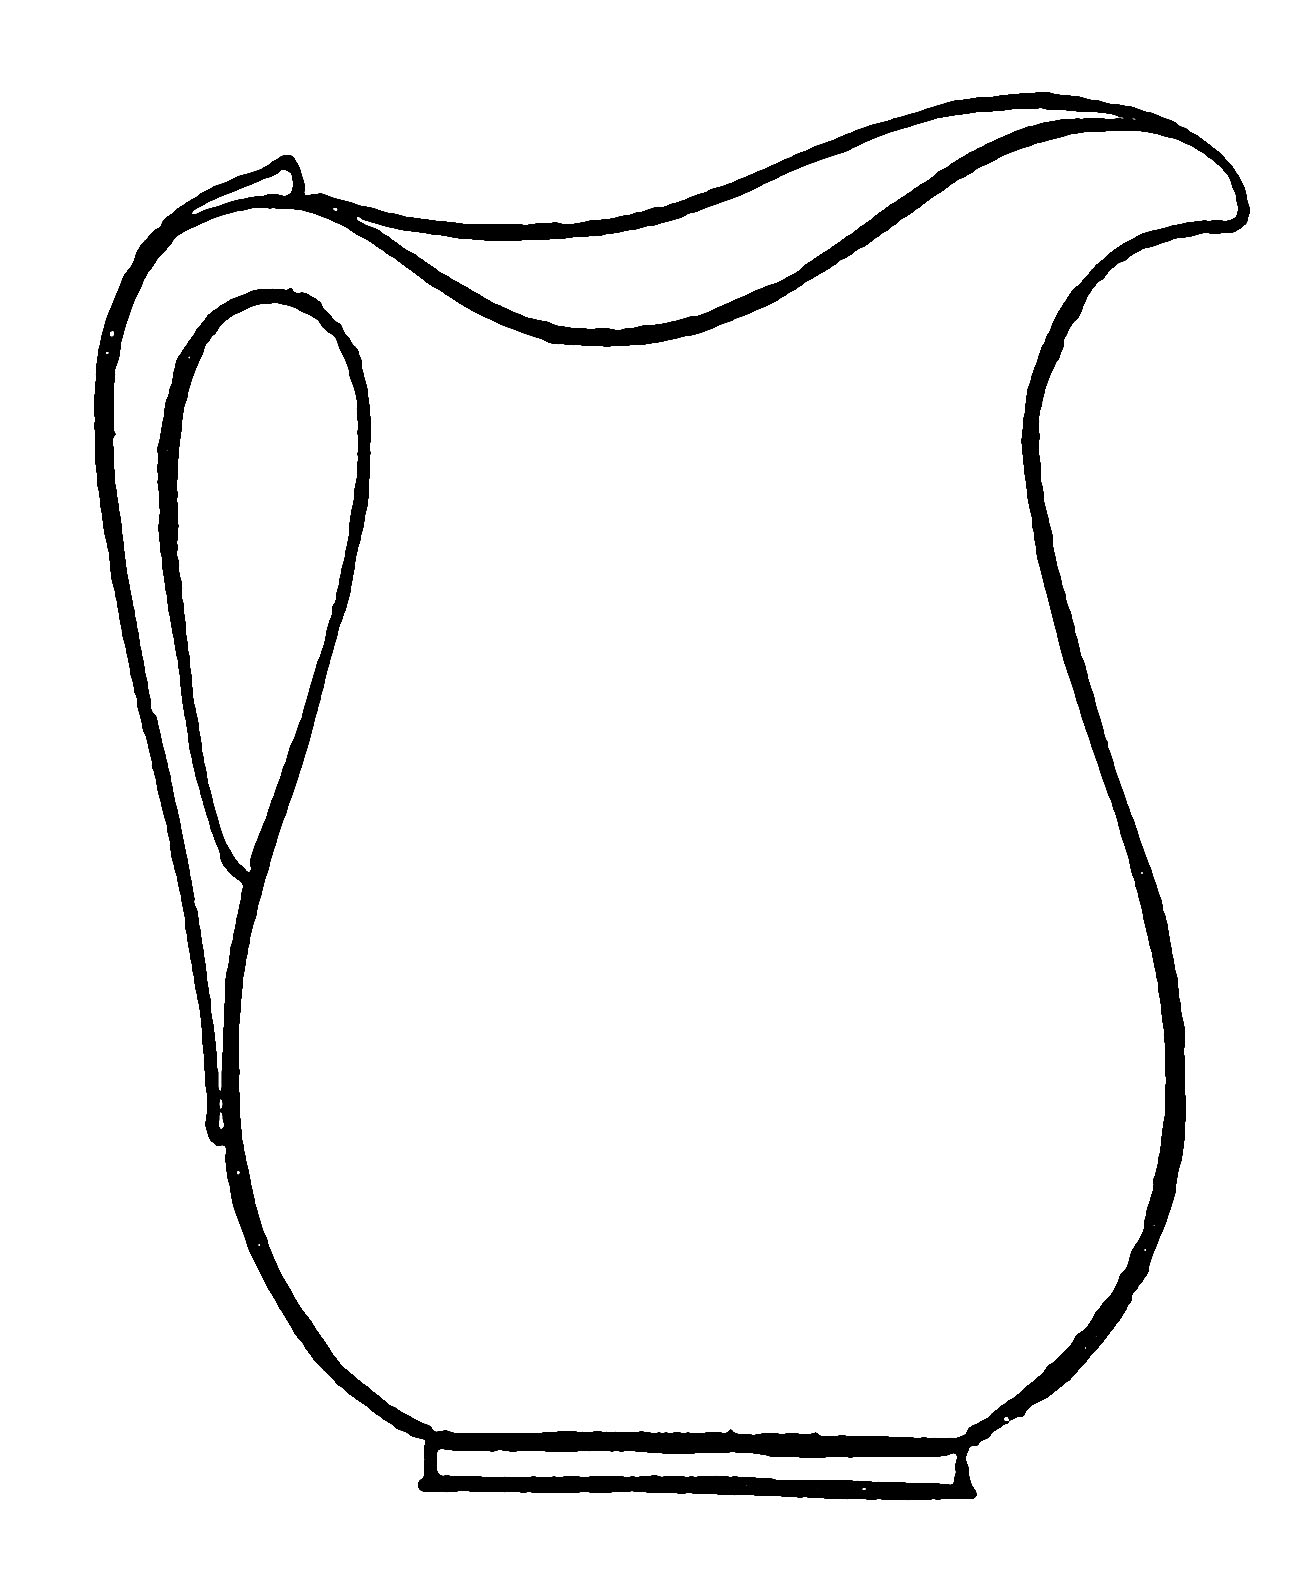 j for jug coloring pages-#18